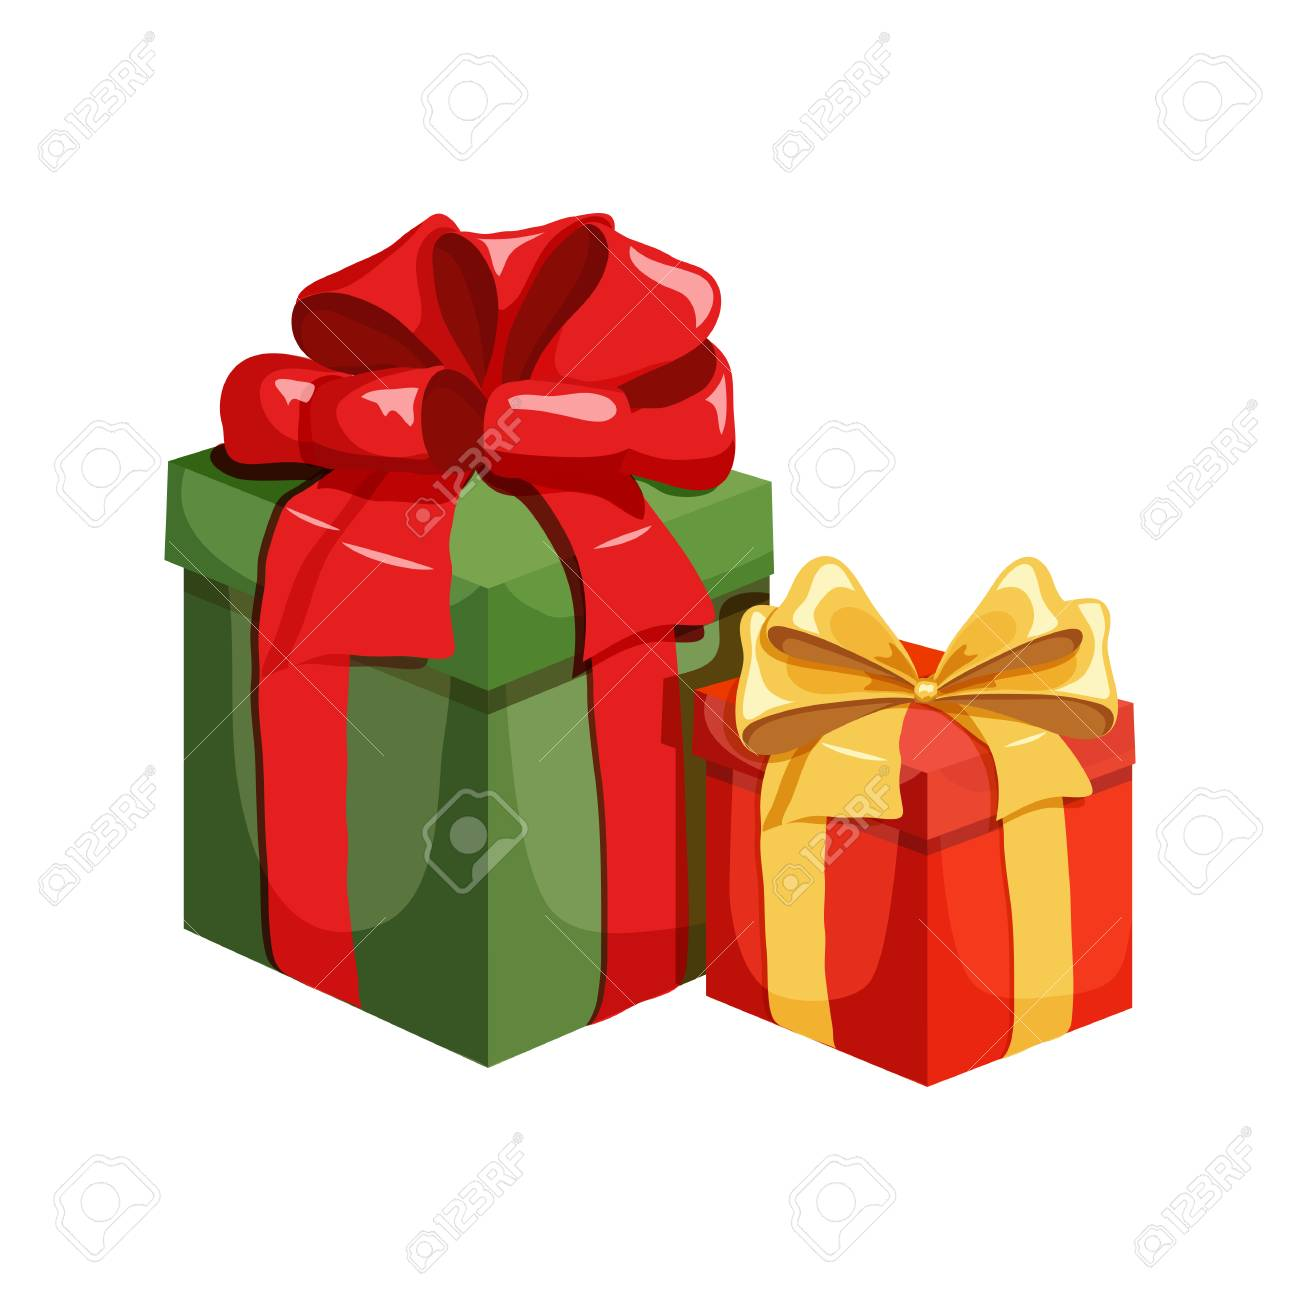 Christmas Gift Box Christmas Holiday Objects Christmas Gift Royalty Free Cliparts Vectors And Stock Illustration Image 63128997